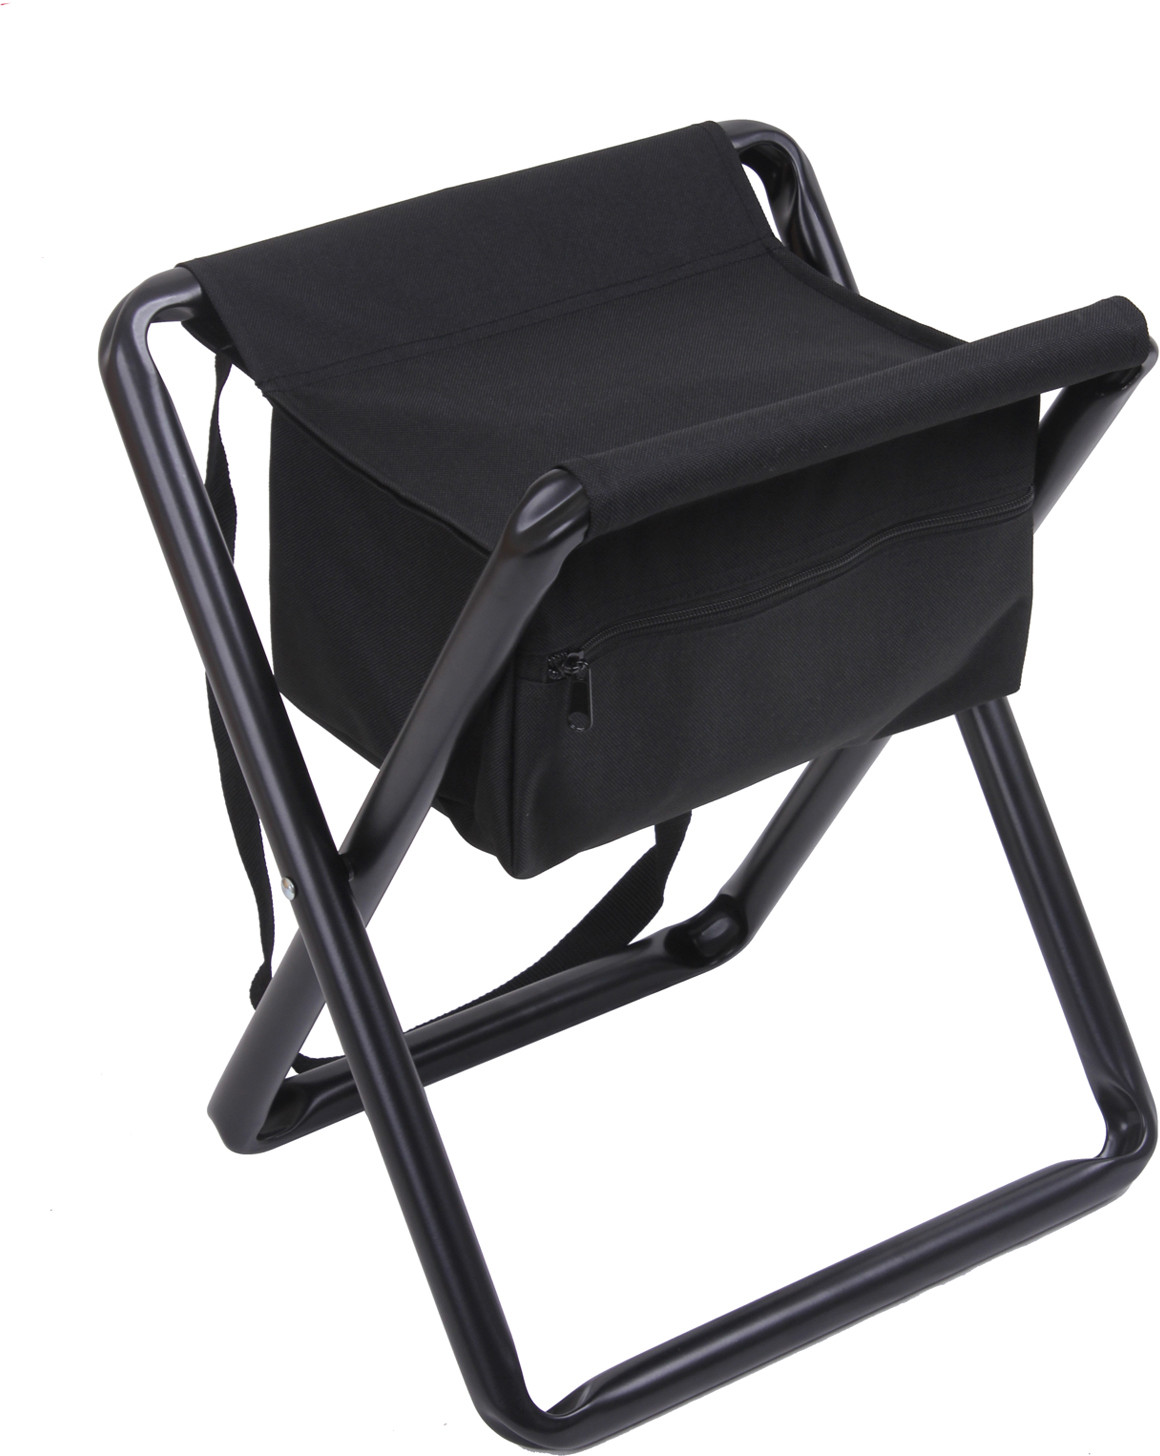 Sturdy Camping Chair Black Deluxe Folding Chair Stool With Storage Pouch